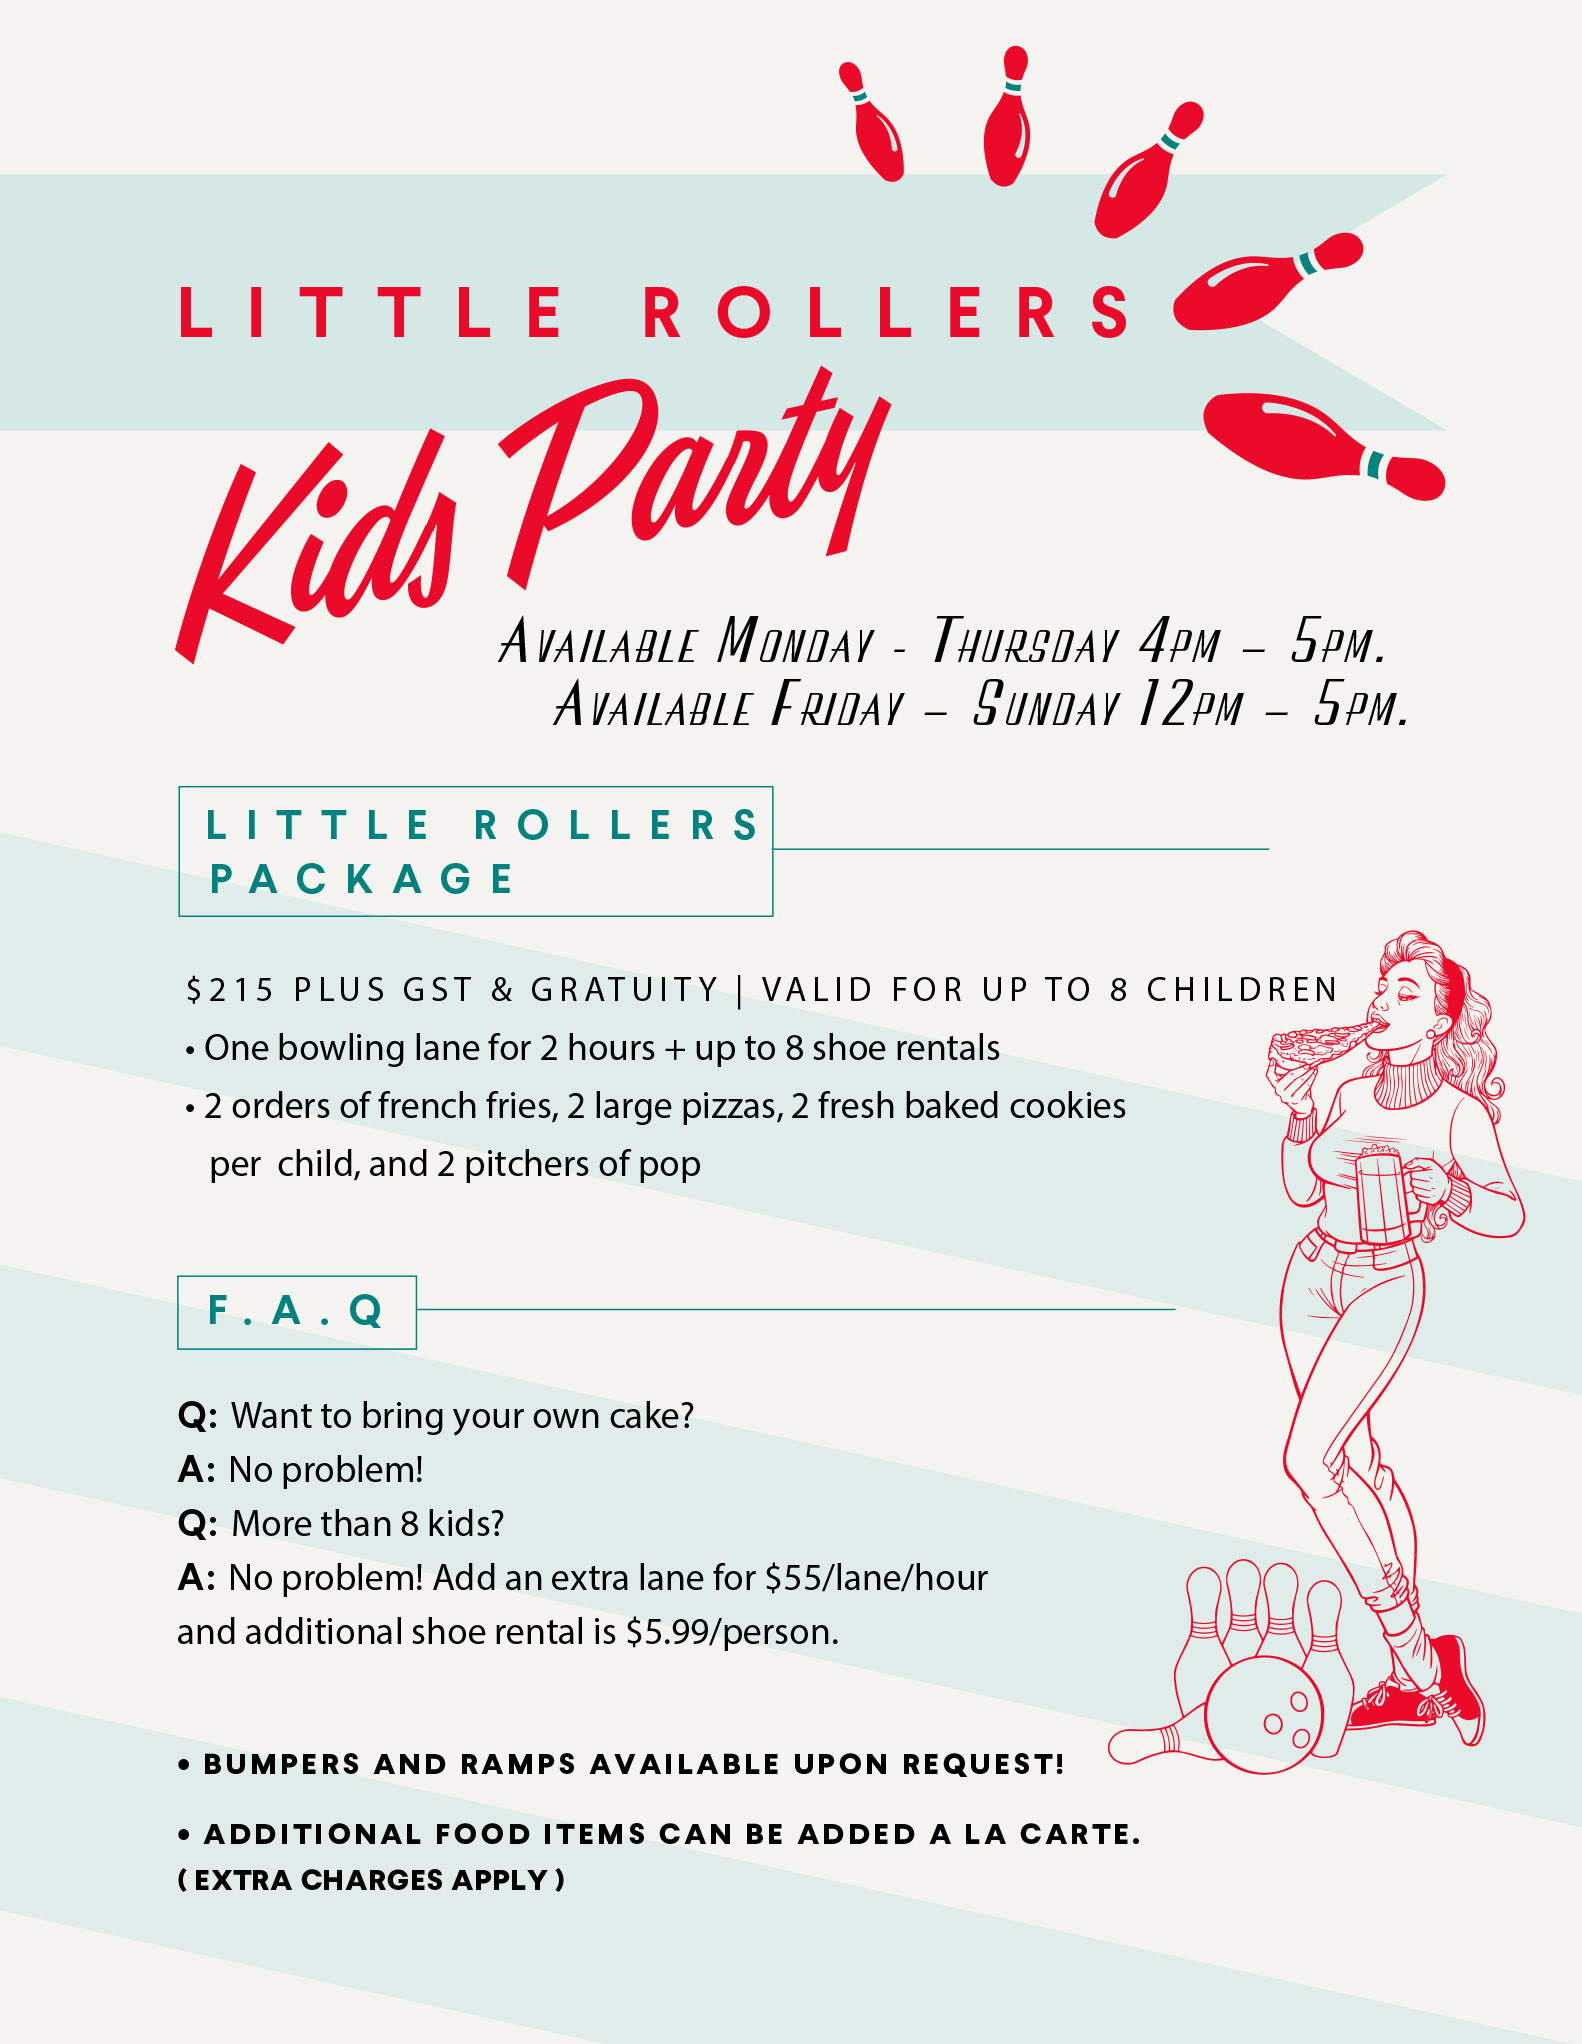 Little Rollers Party Package.jpg